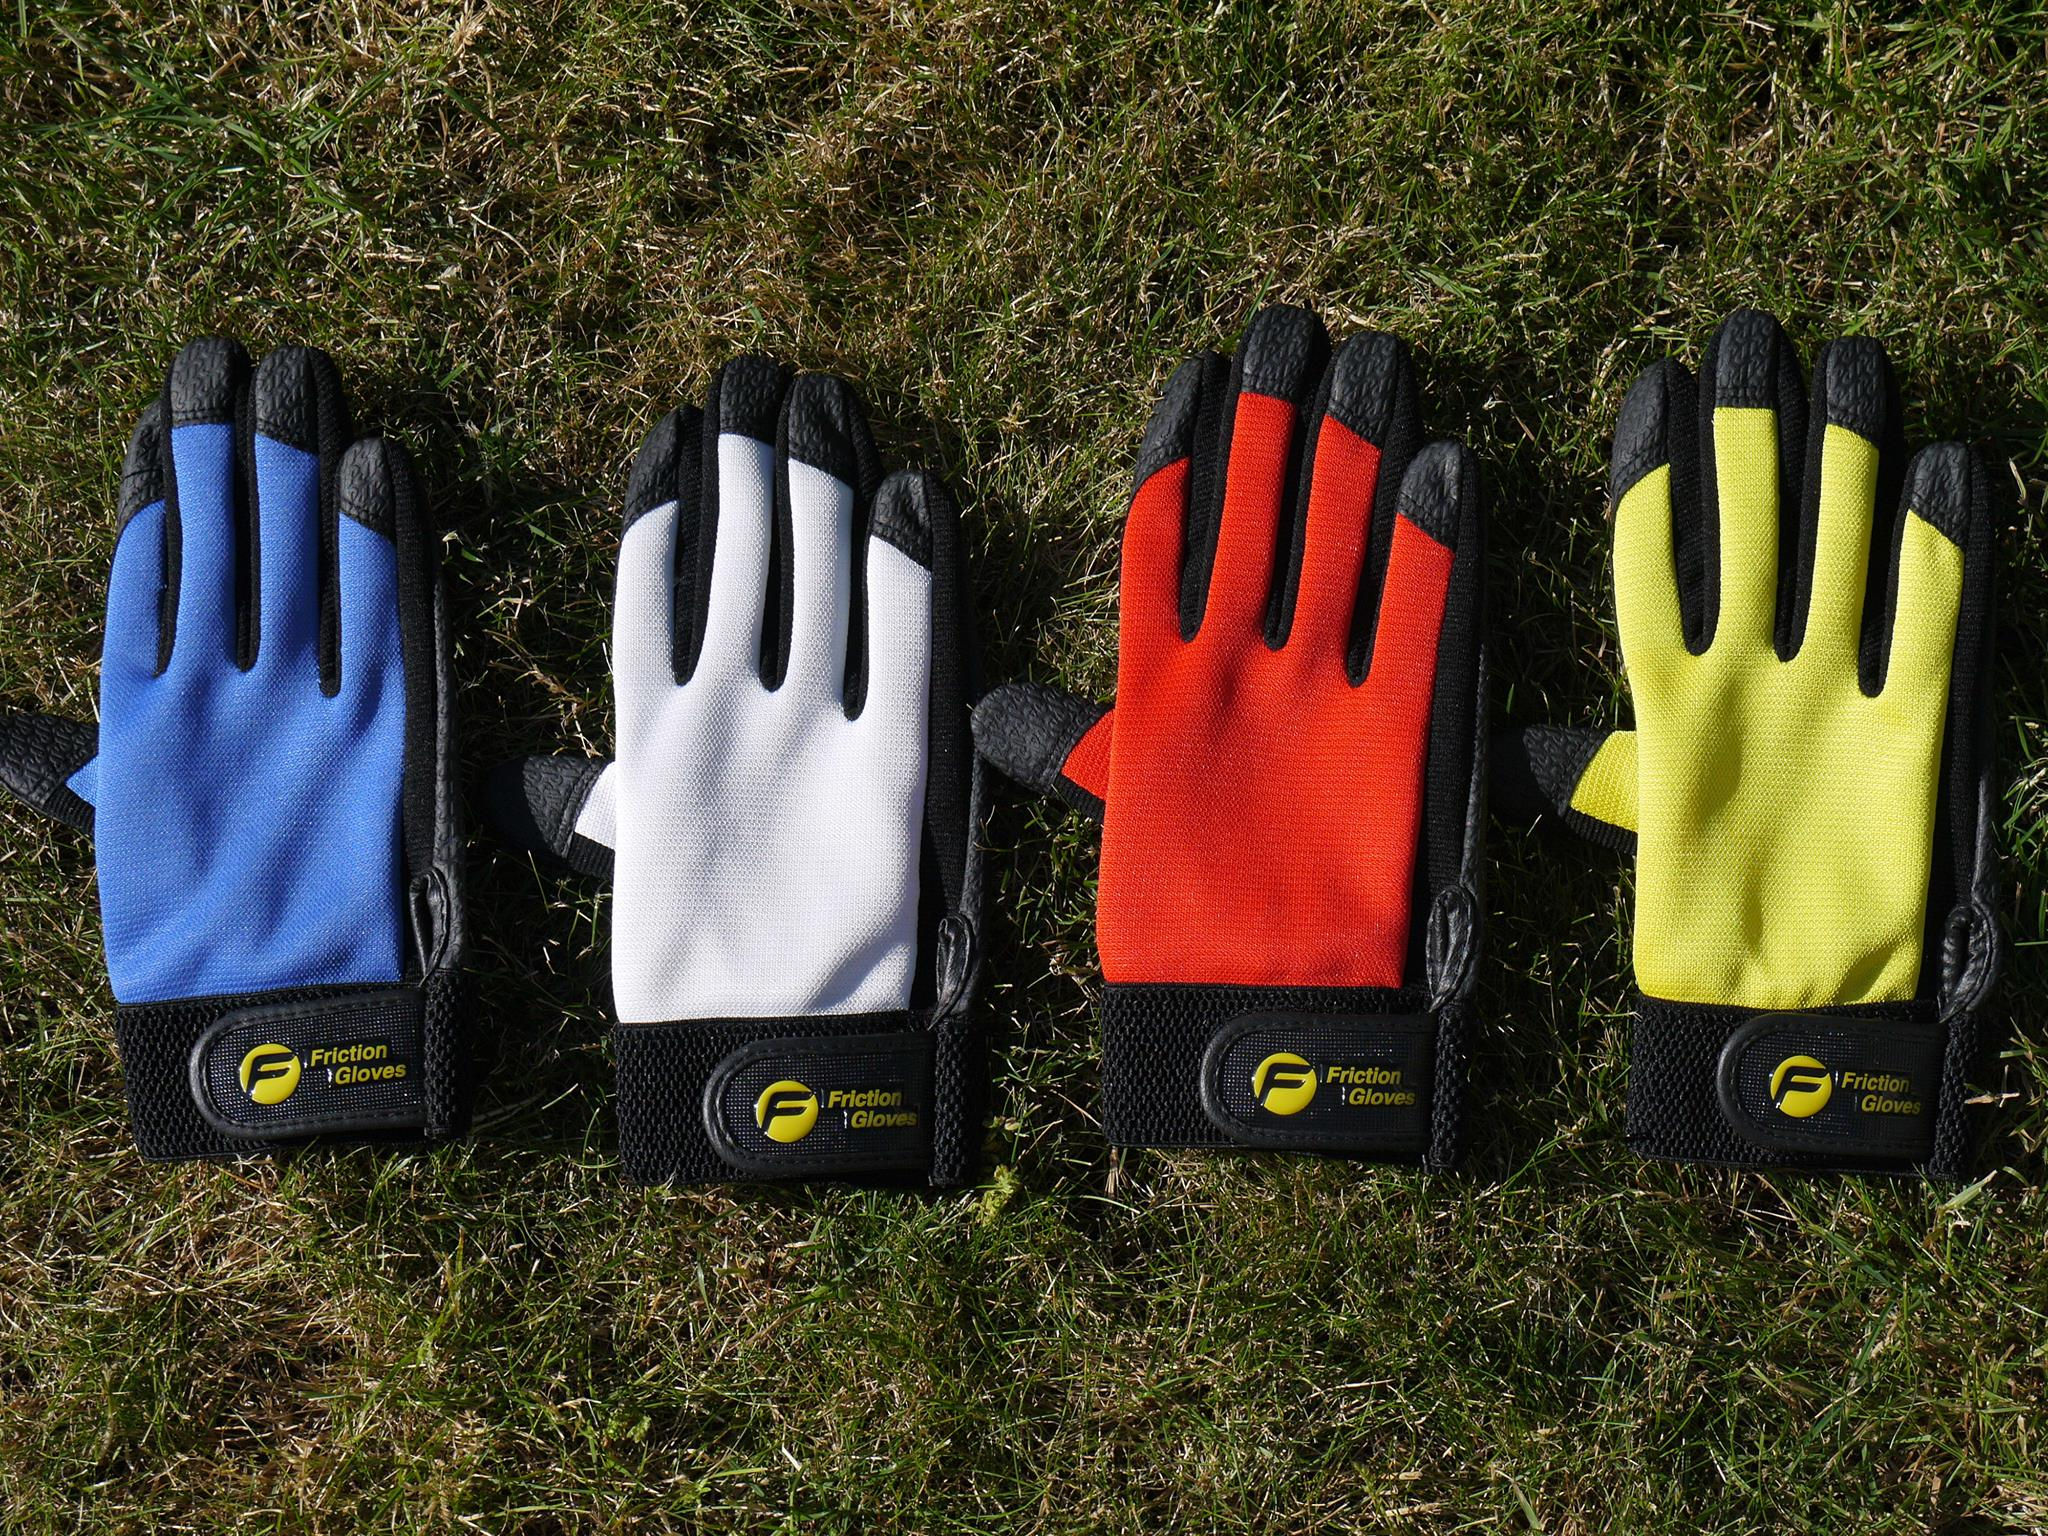 The gloves are available in 4 colors